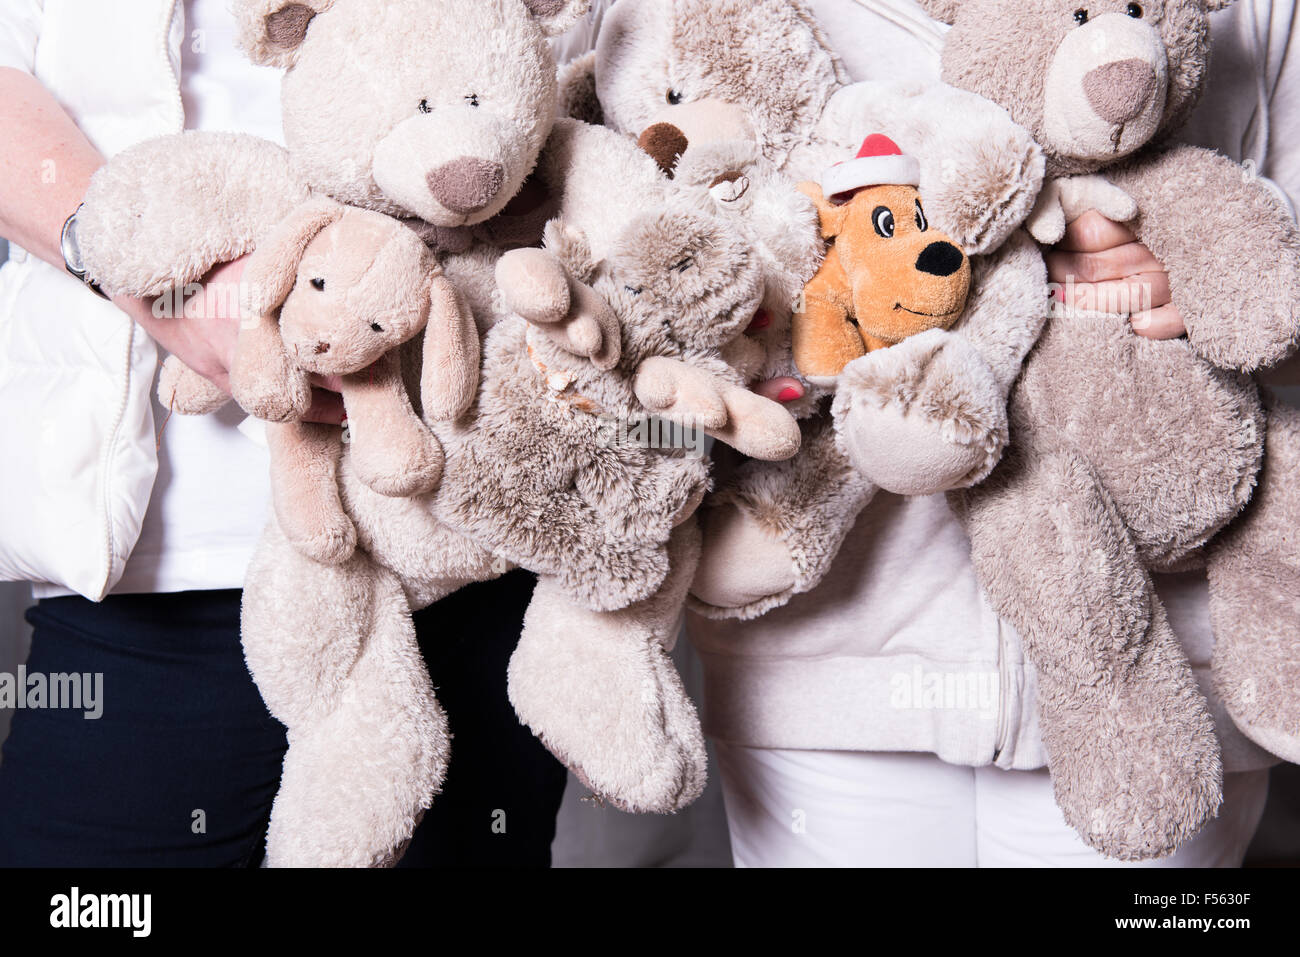 female helpers offer toys to refugee children - Stock Image